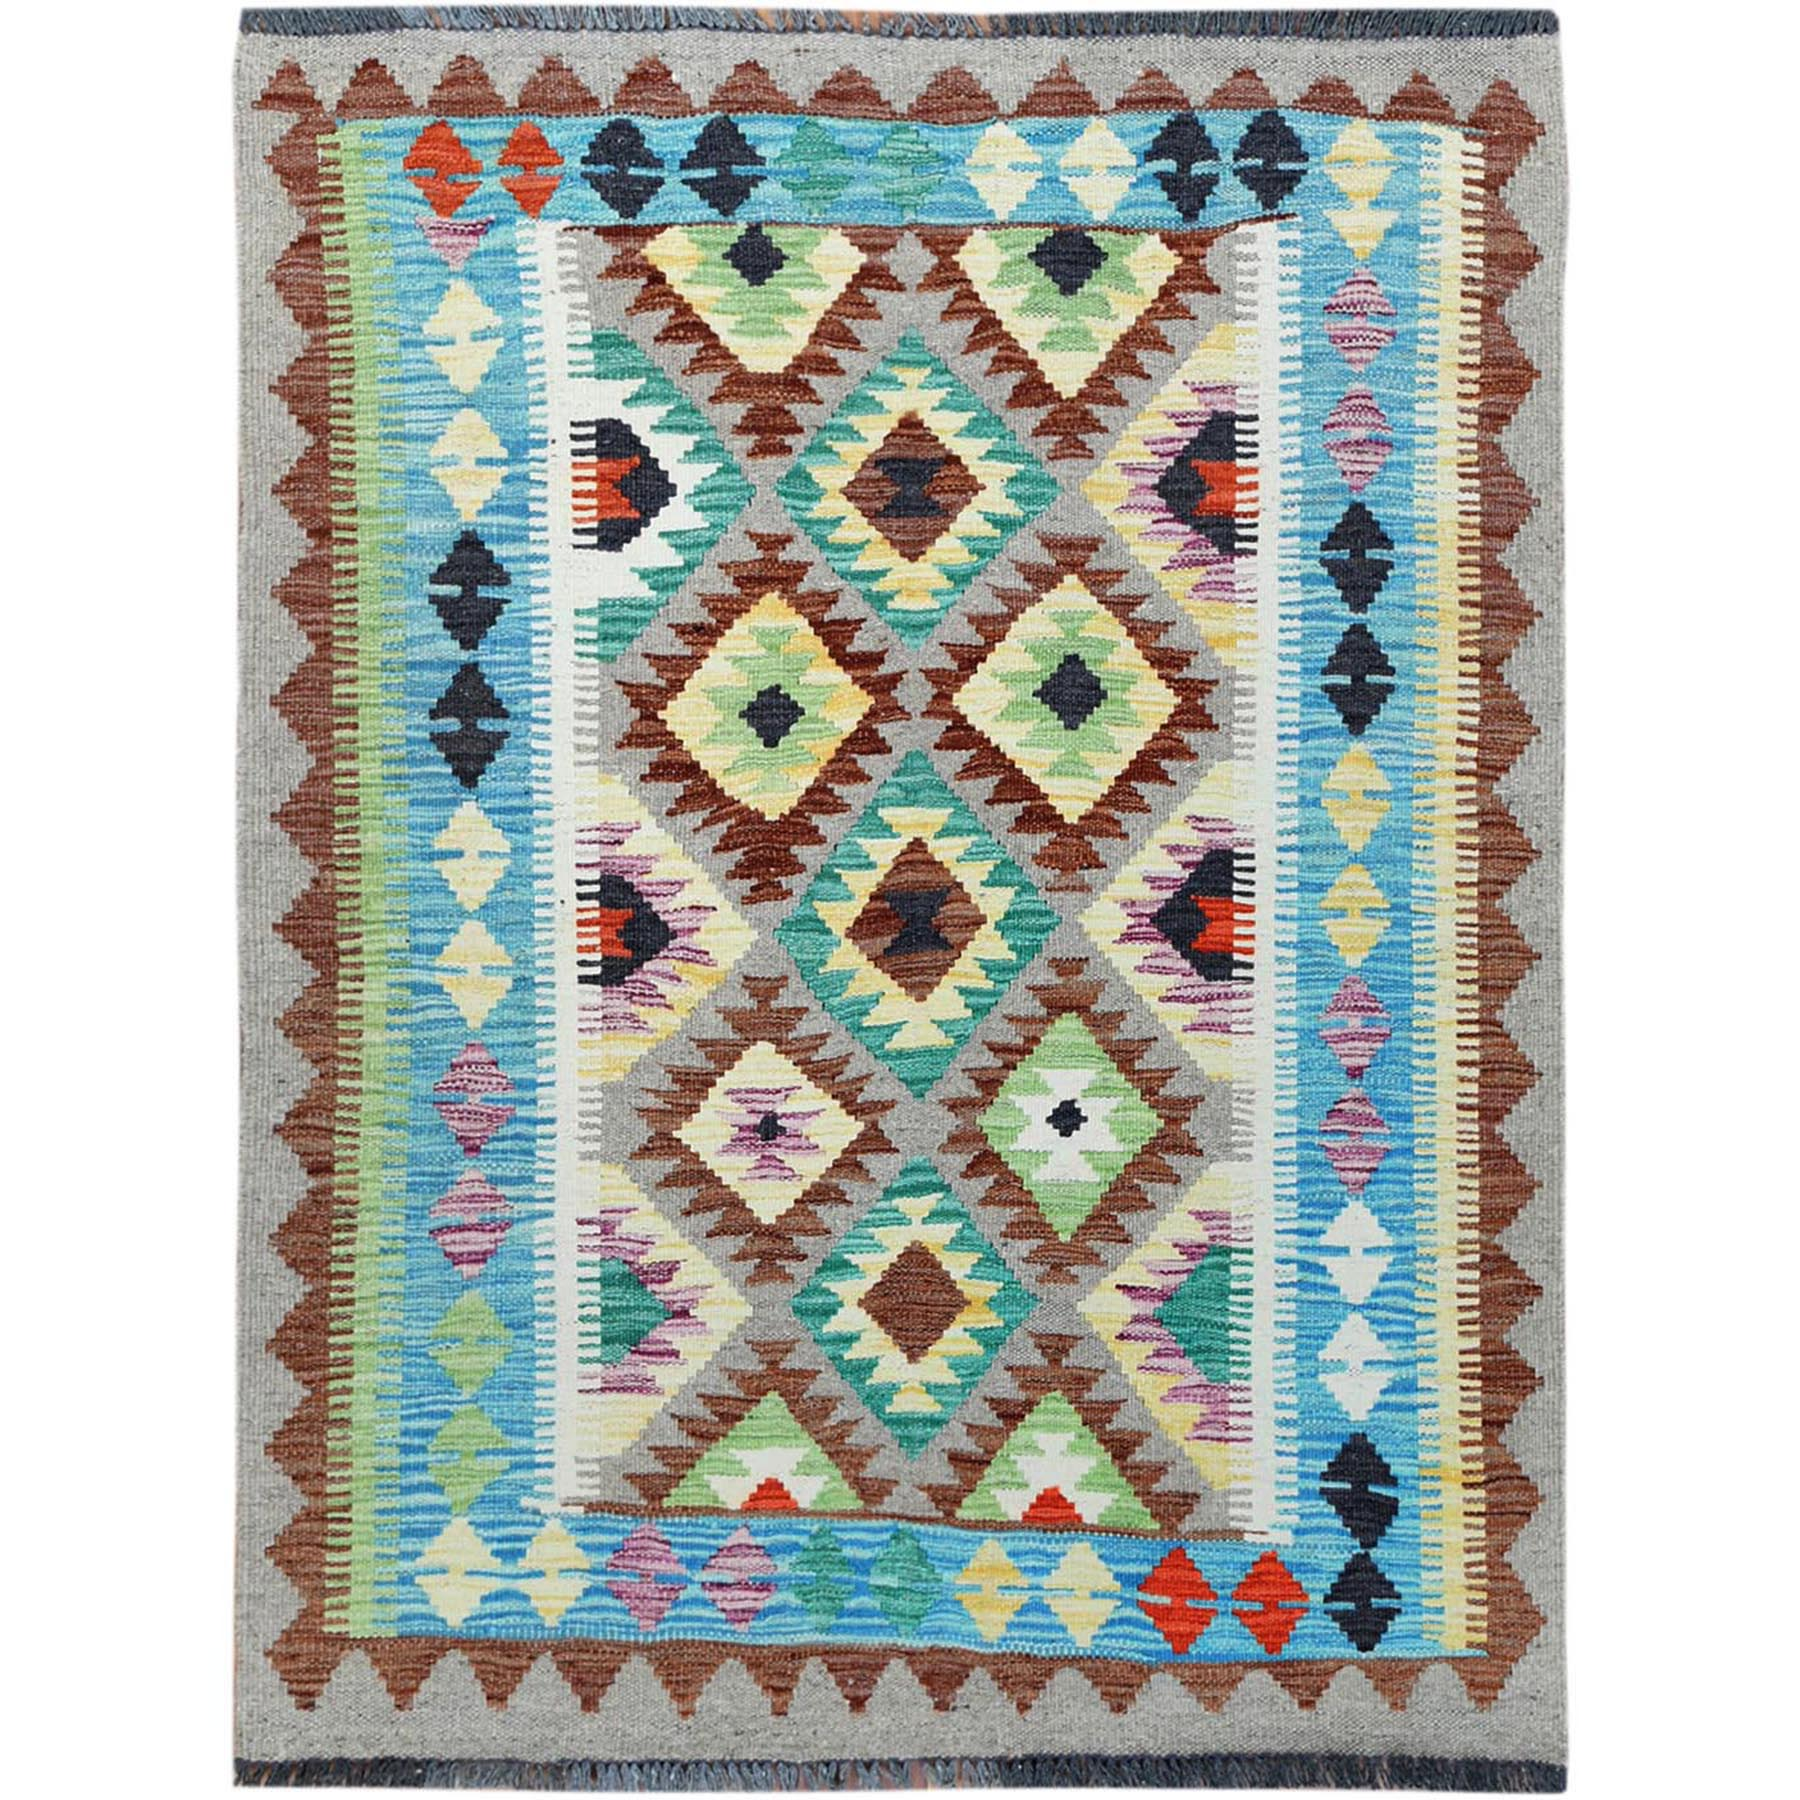 "3'5""x4'5"" Colorful Afghan Kilim Tribal Design Reversible Organic Wool Hand Woven Oriental Rug"